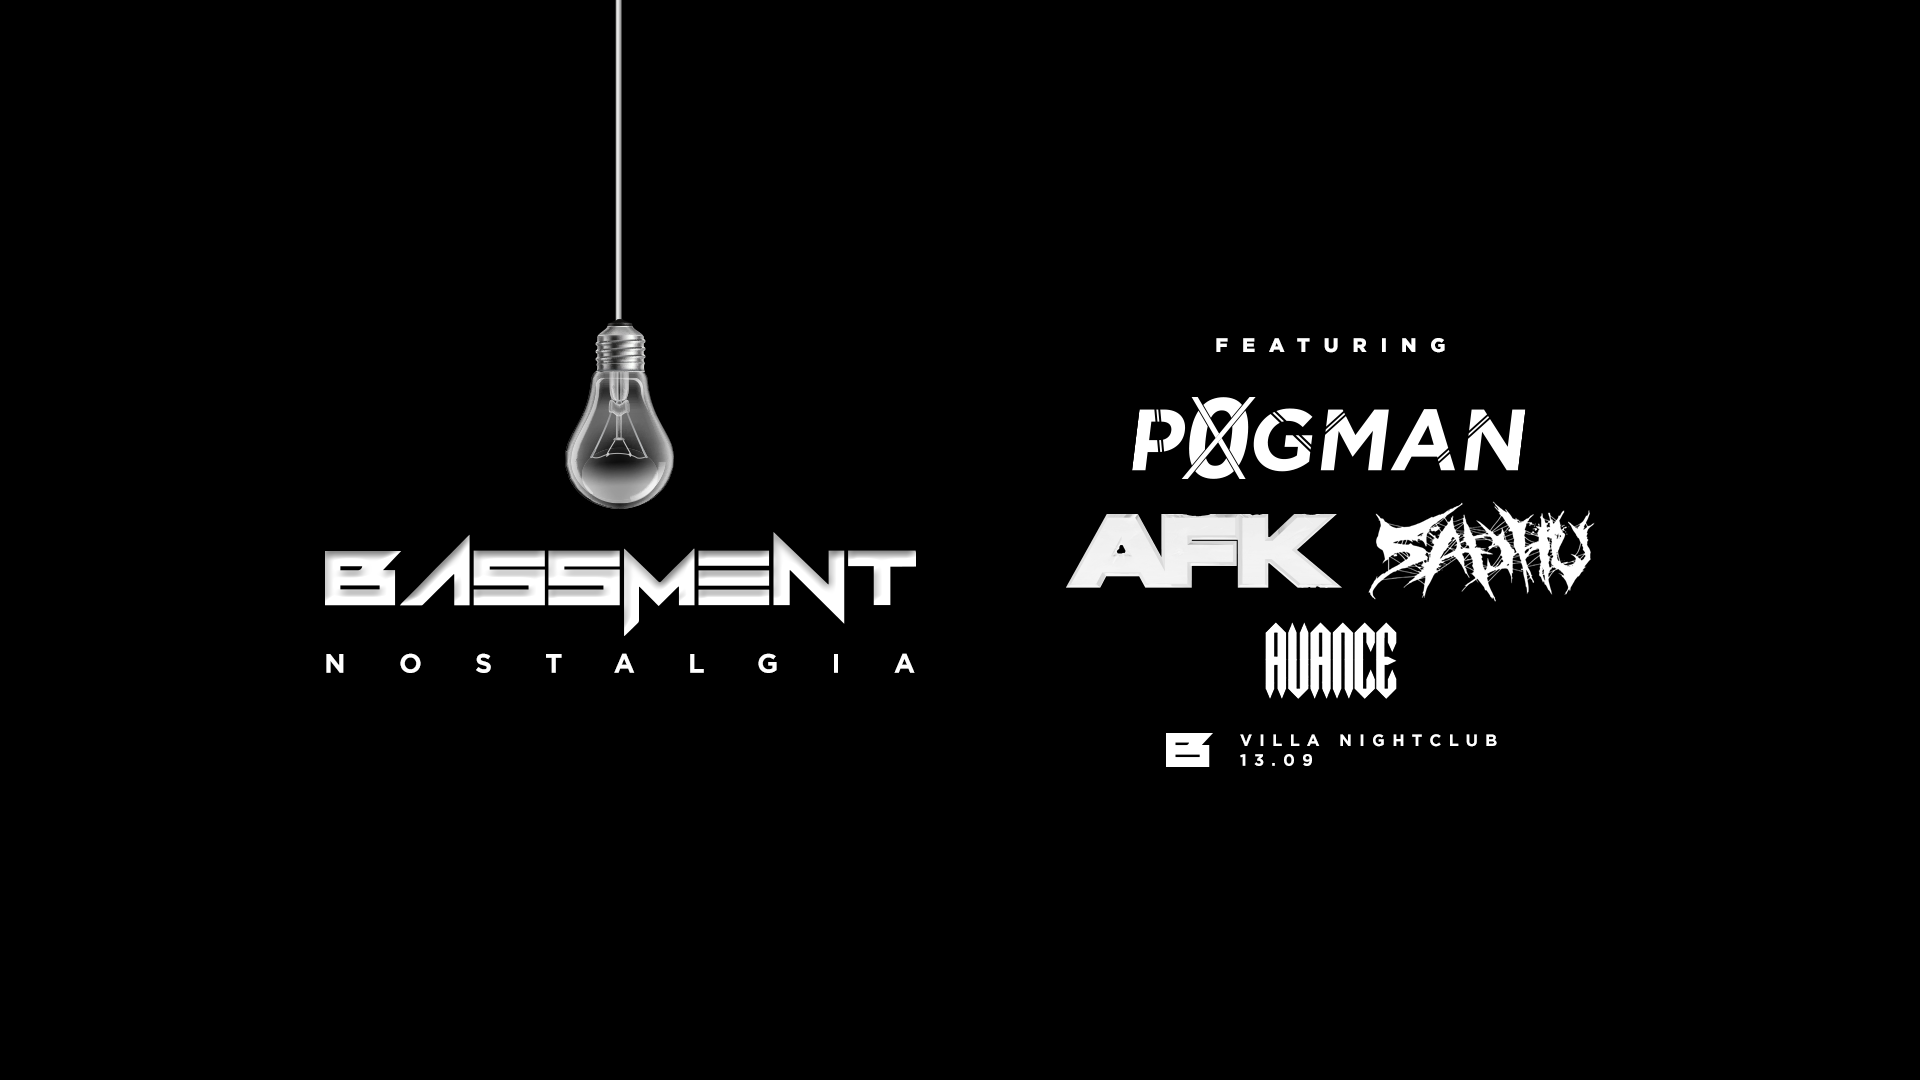 Tickets for BASSMENT - NOSTALGIA Ft. PØGMAN, AFK & SADHU in Perth from Ticketbooth